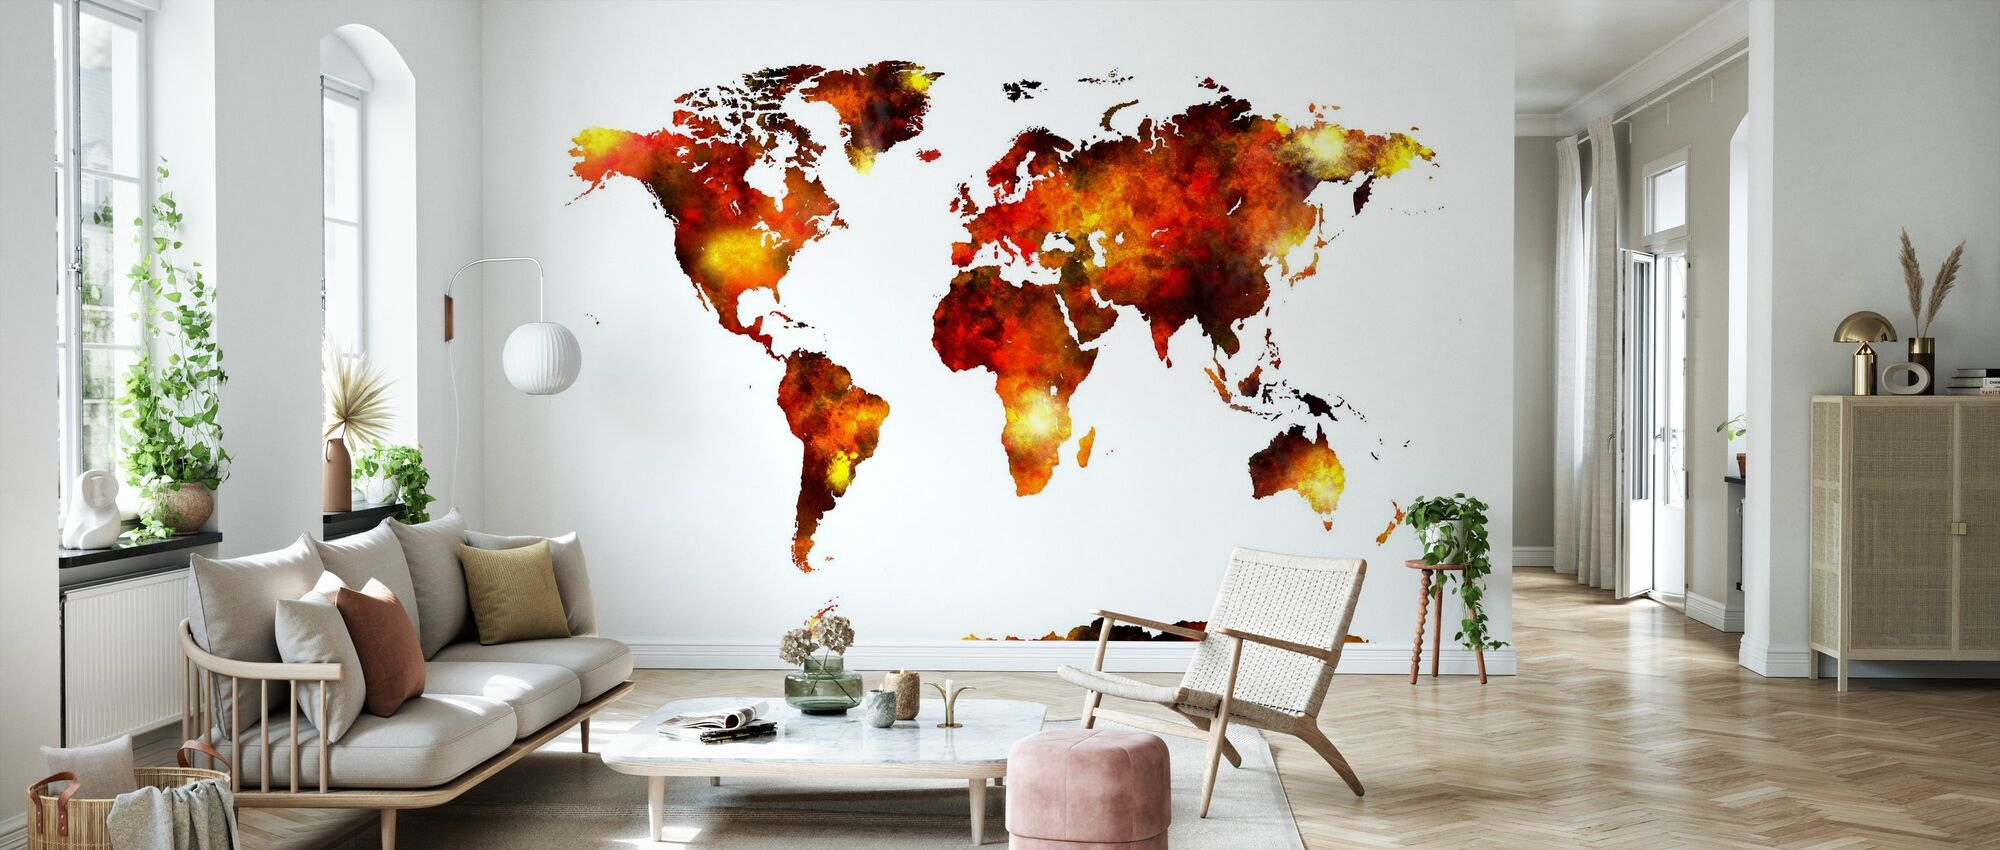 Watercolour World Map Orange - Wallpaper - Living Room